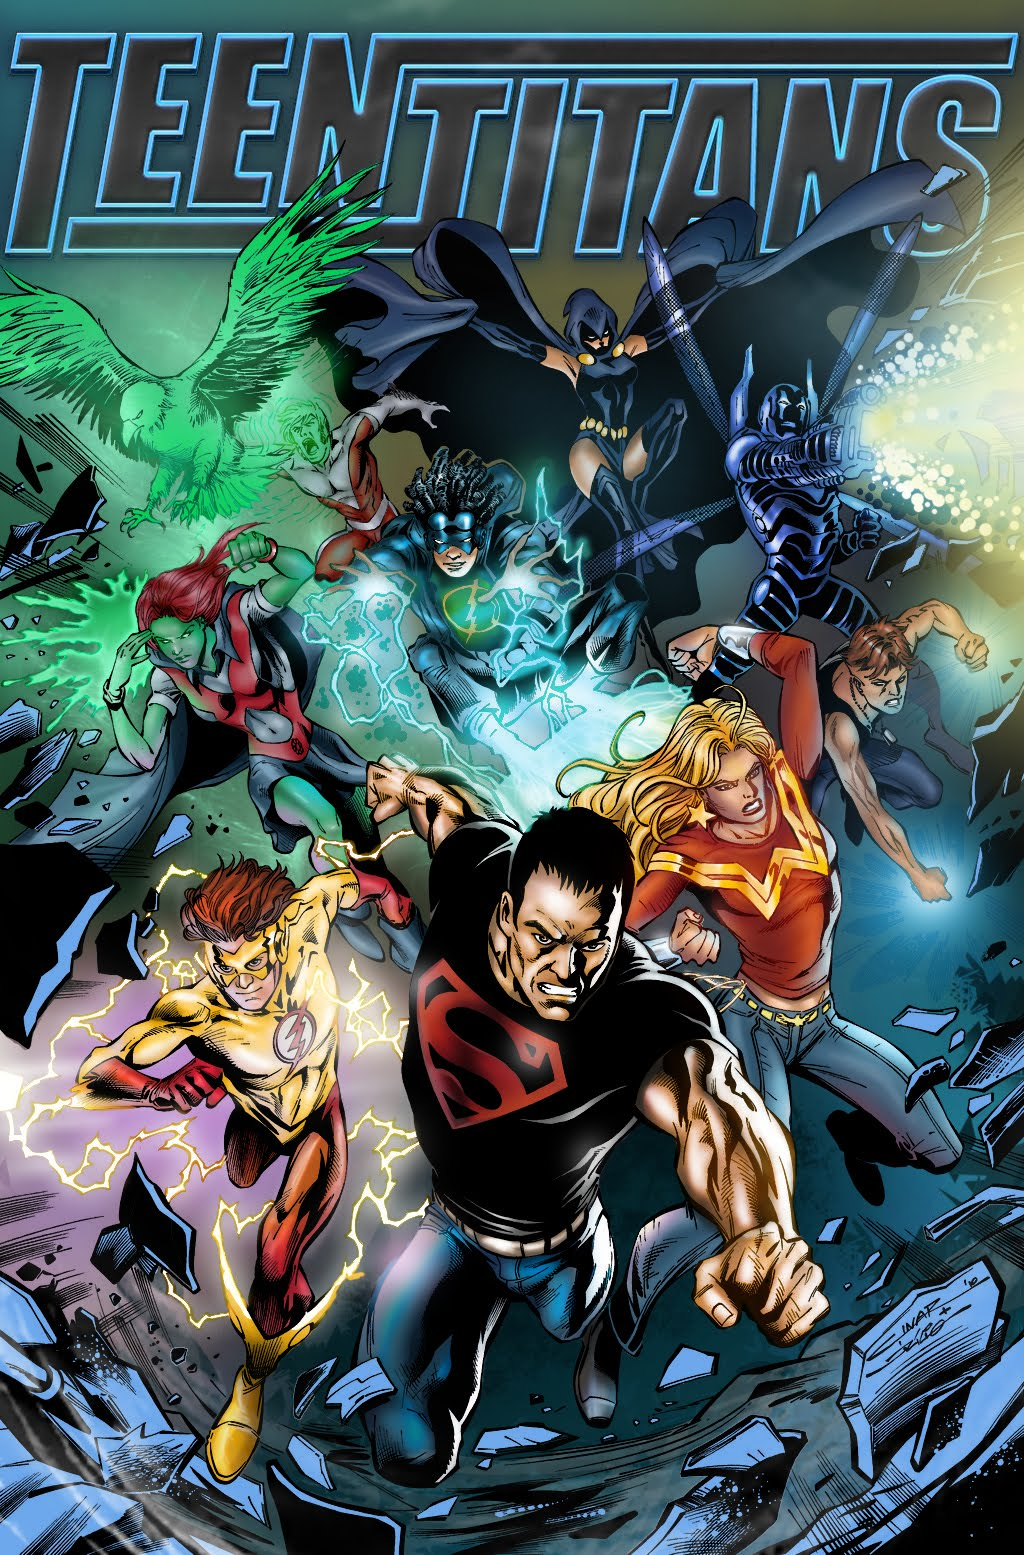 Teen Titans Cover Col Smek Teen Titans 56 Wallpaper